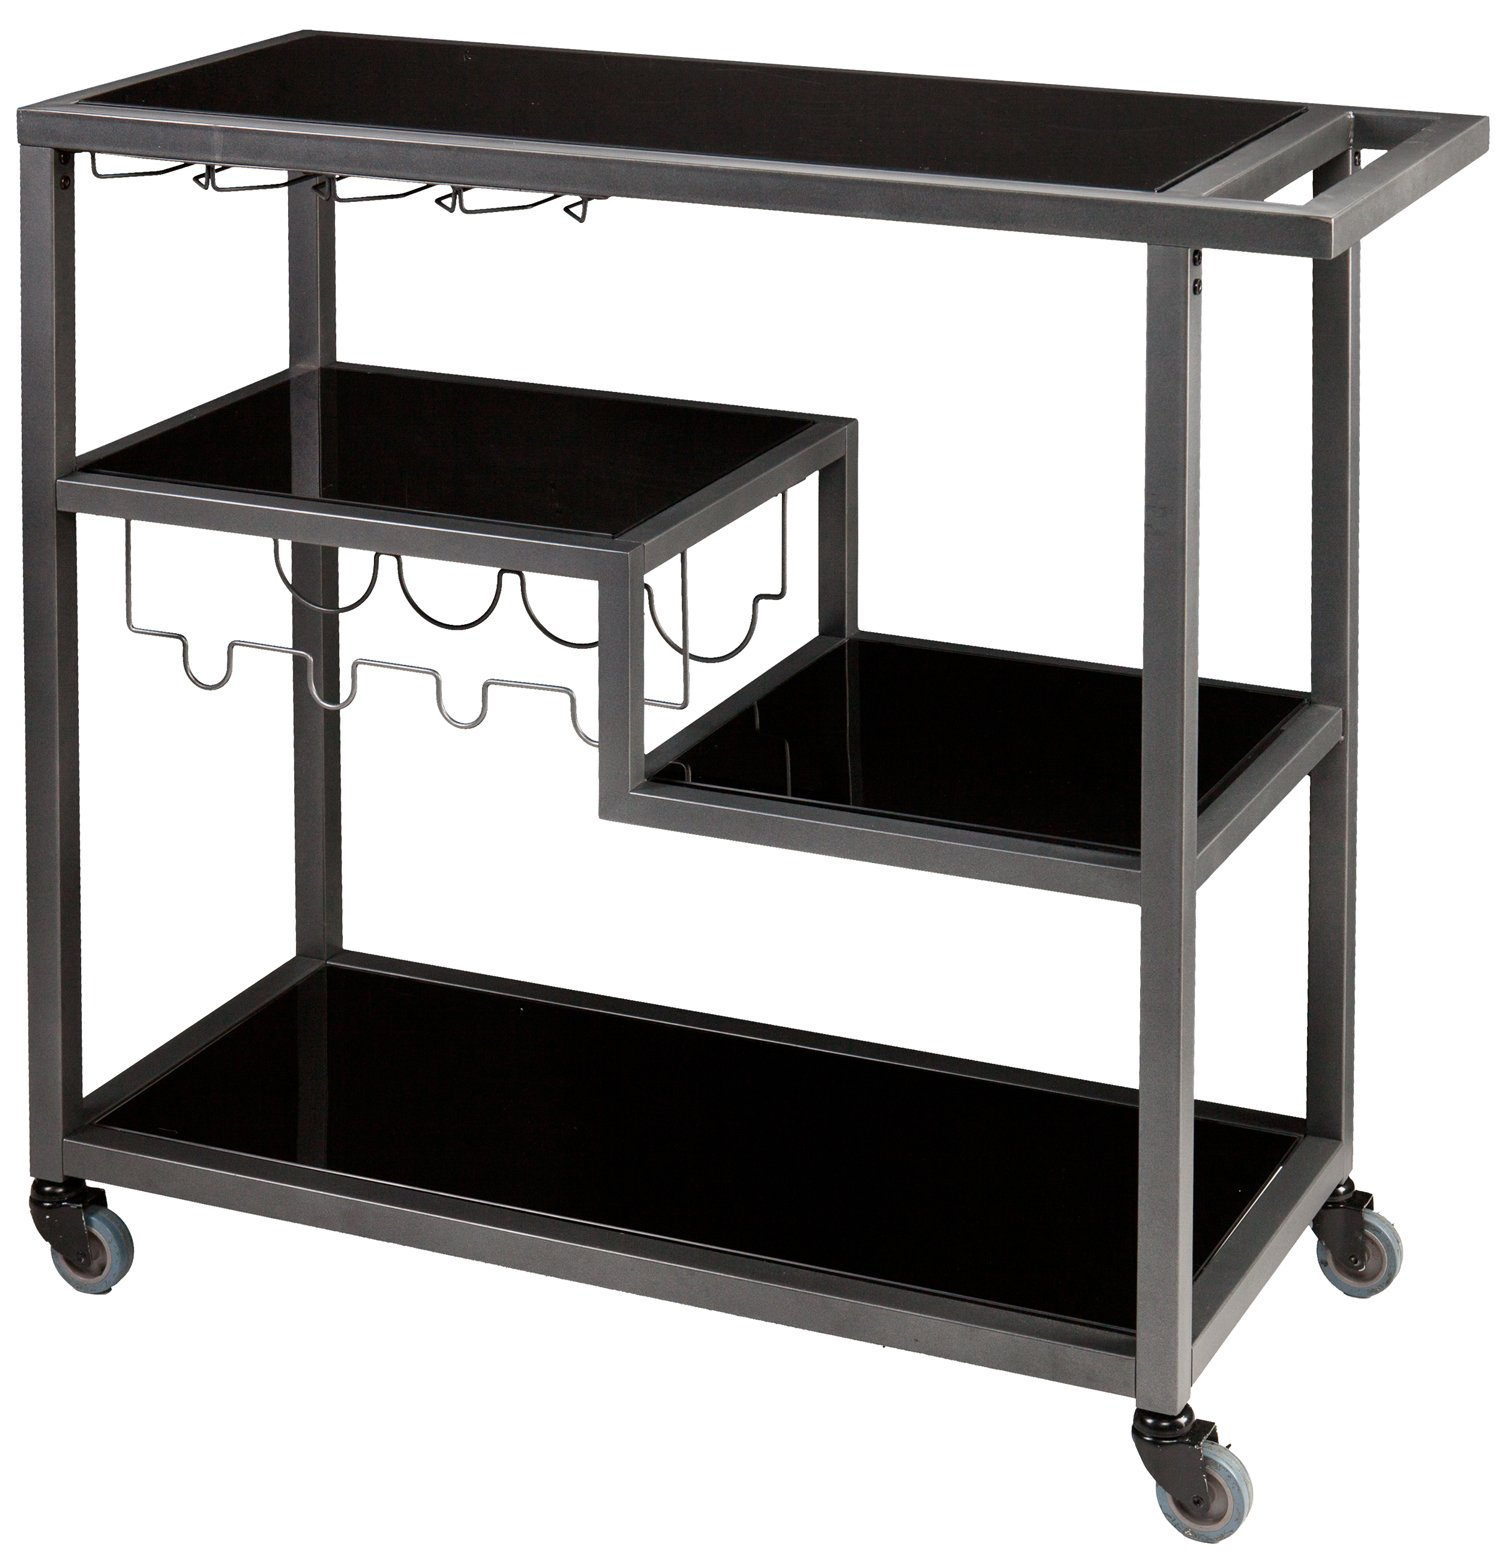 Holly & Martin HZ8810 Zephs Transitional Bar Cart SEI-HZ8810